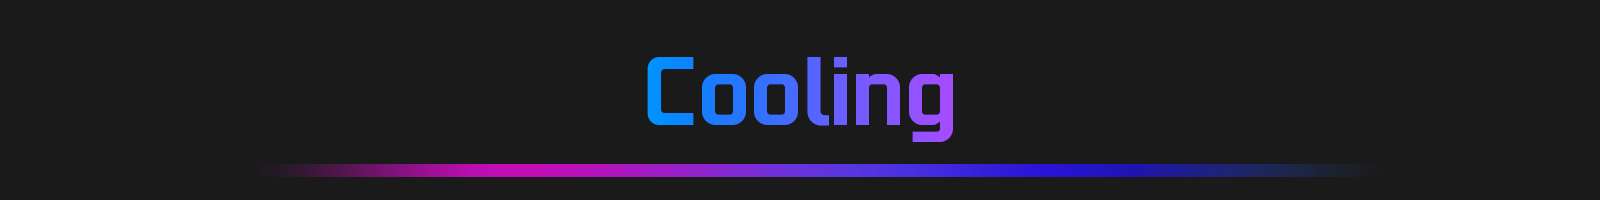 Stylized Text That Reads: Cooling